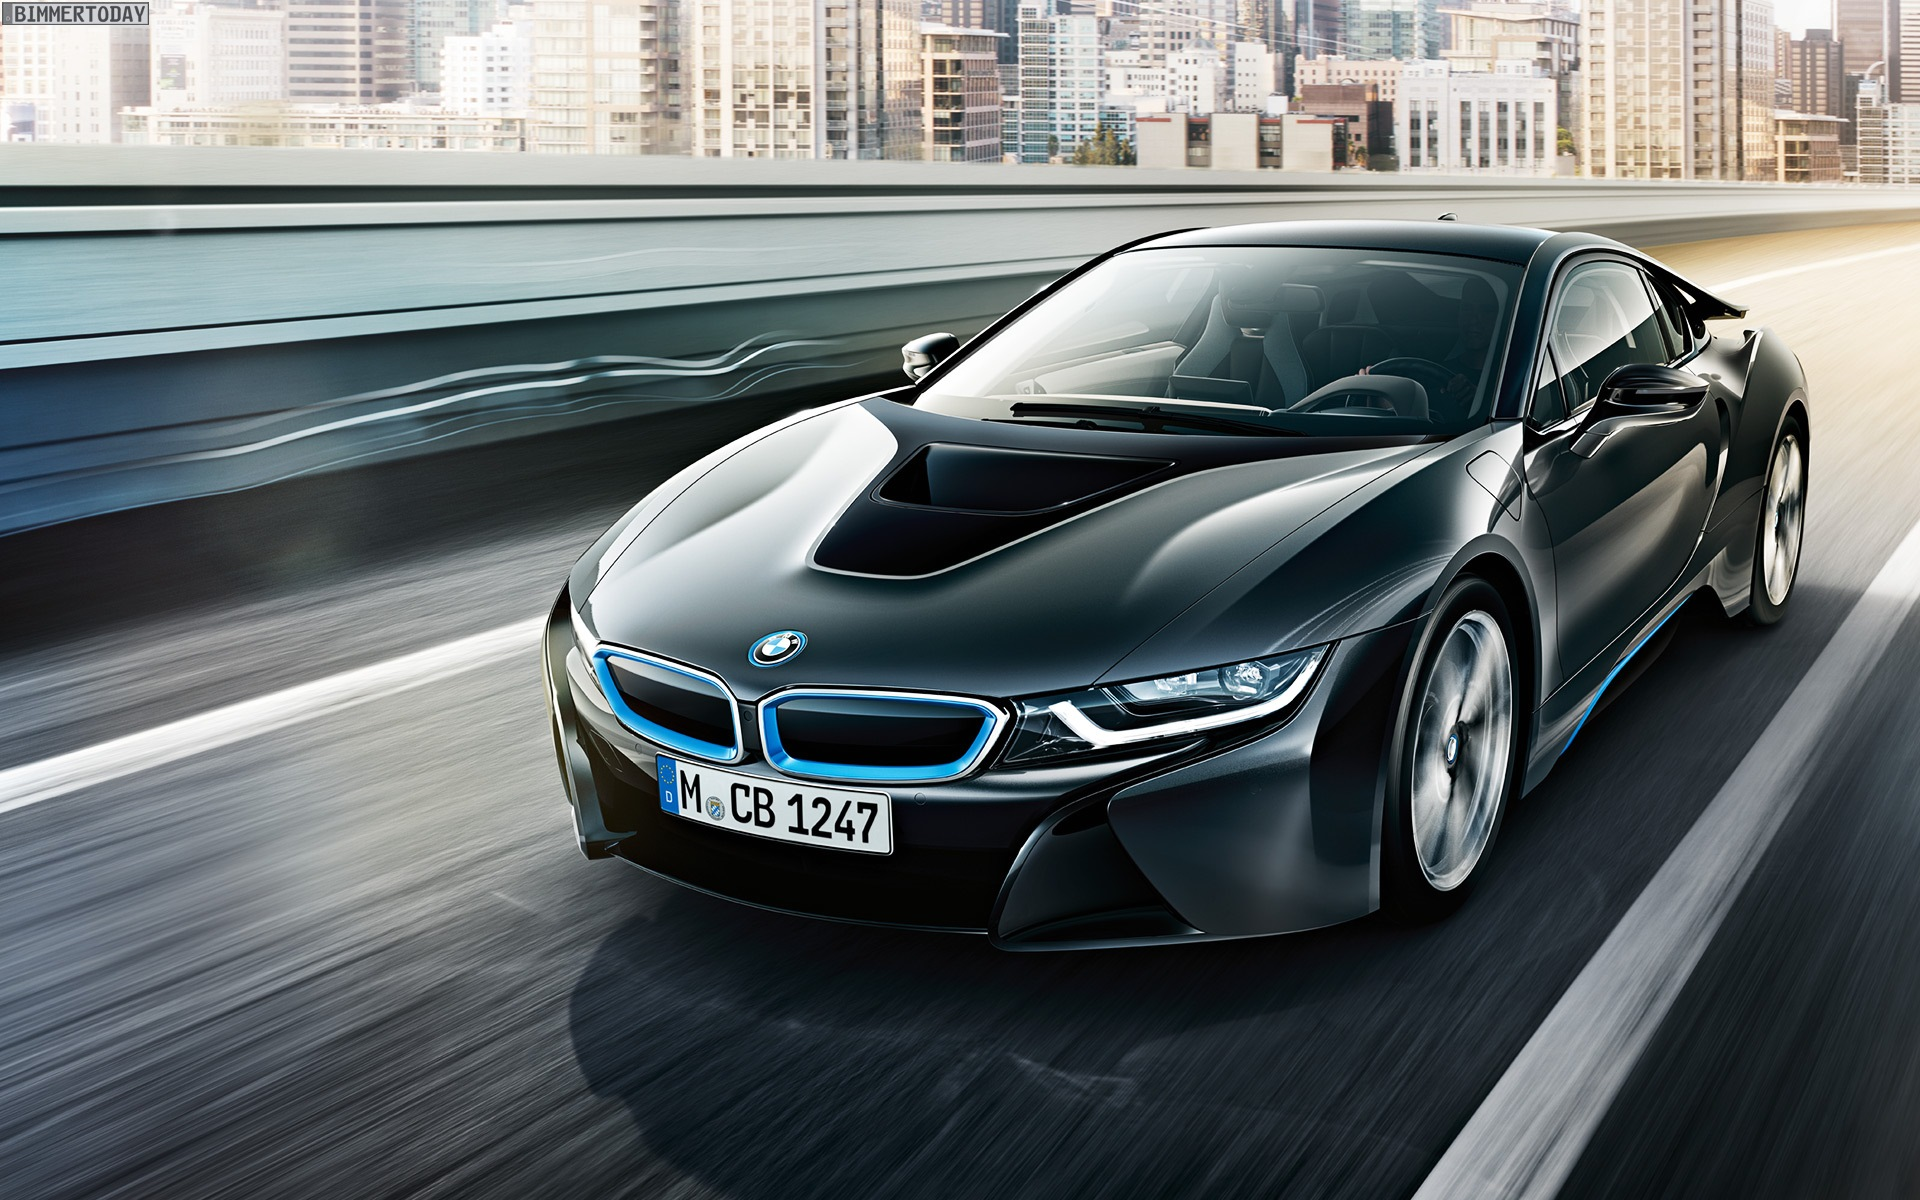 2014 BMW I8 Wallpaper IBackgroundWallpaper 1920x1200